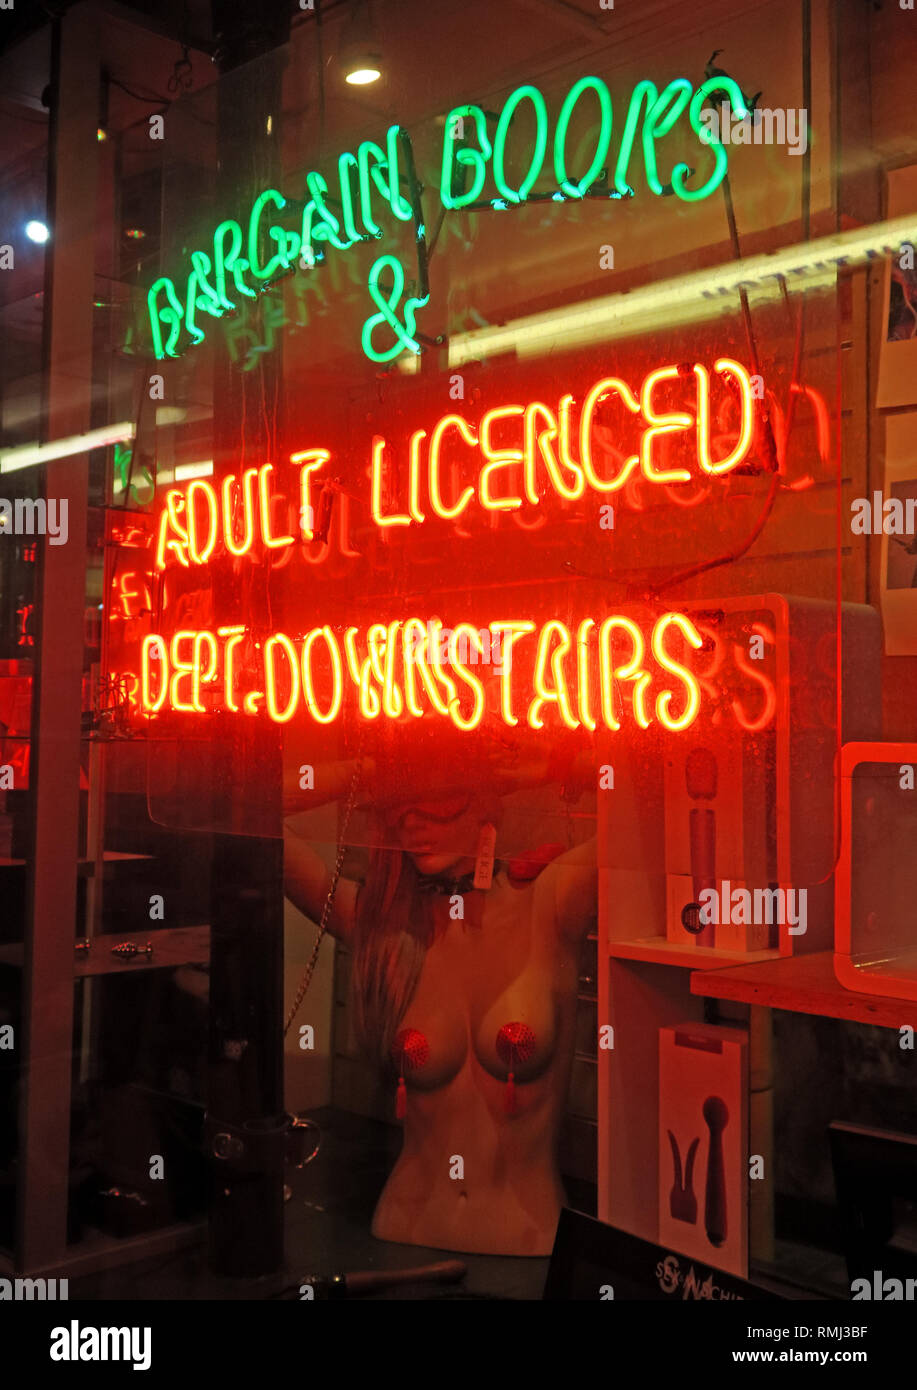 Bargain Books, Adult Licenced Department, Downstairs, Neon Sign, Soho, London, England, UK Stock Photo